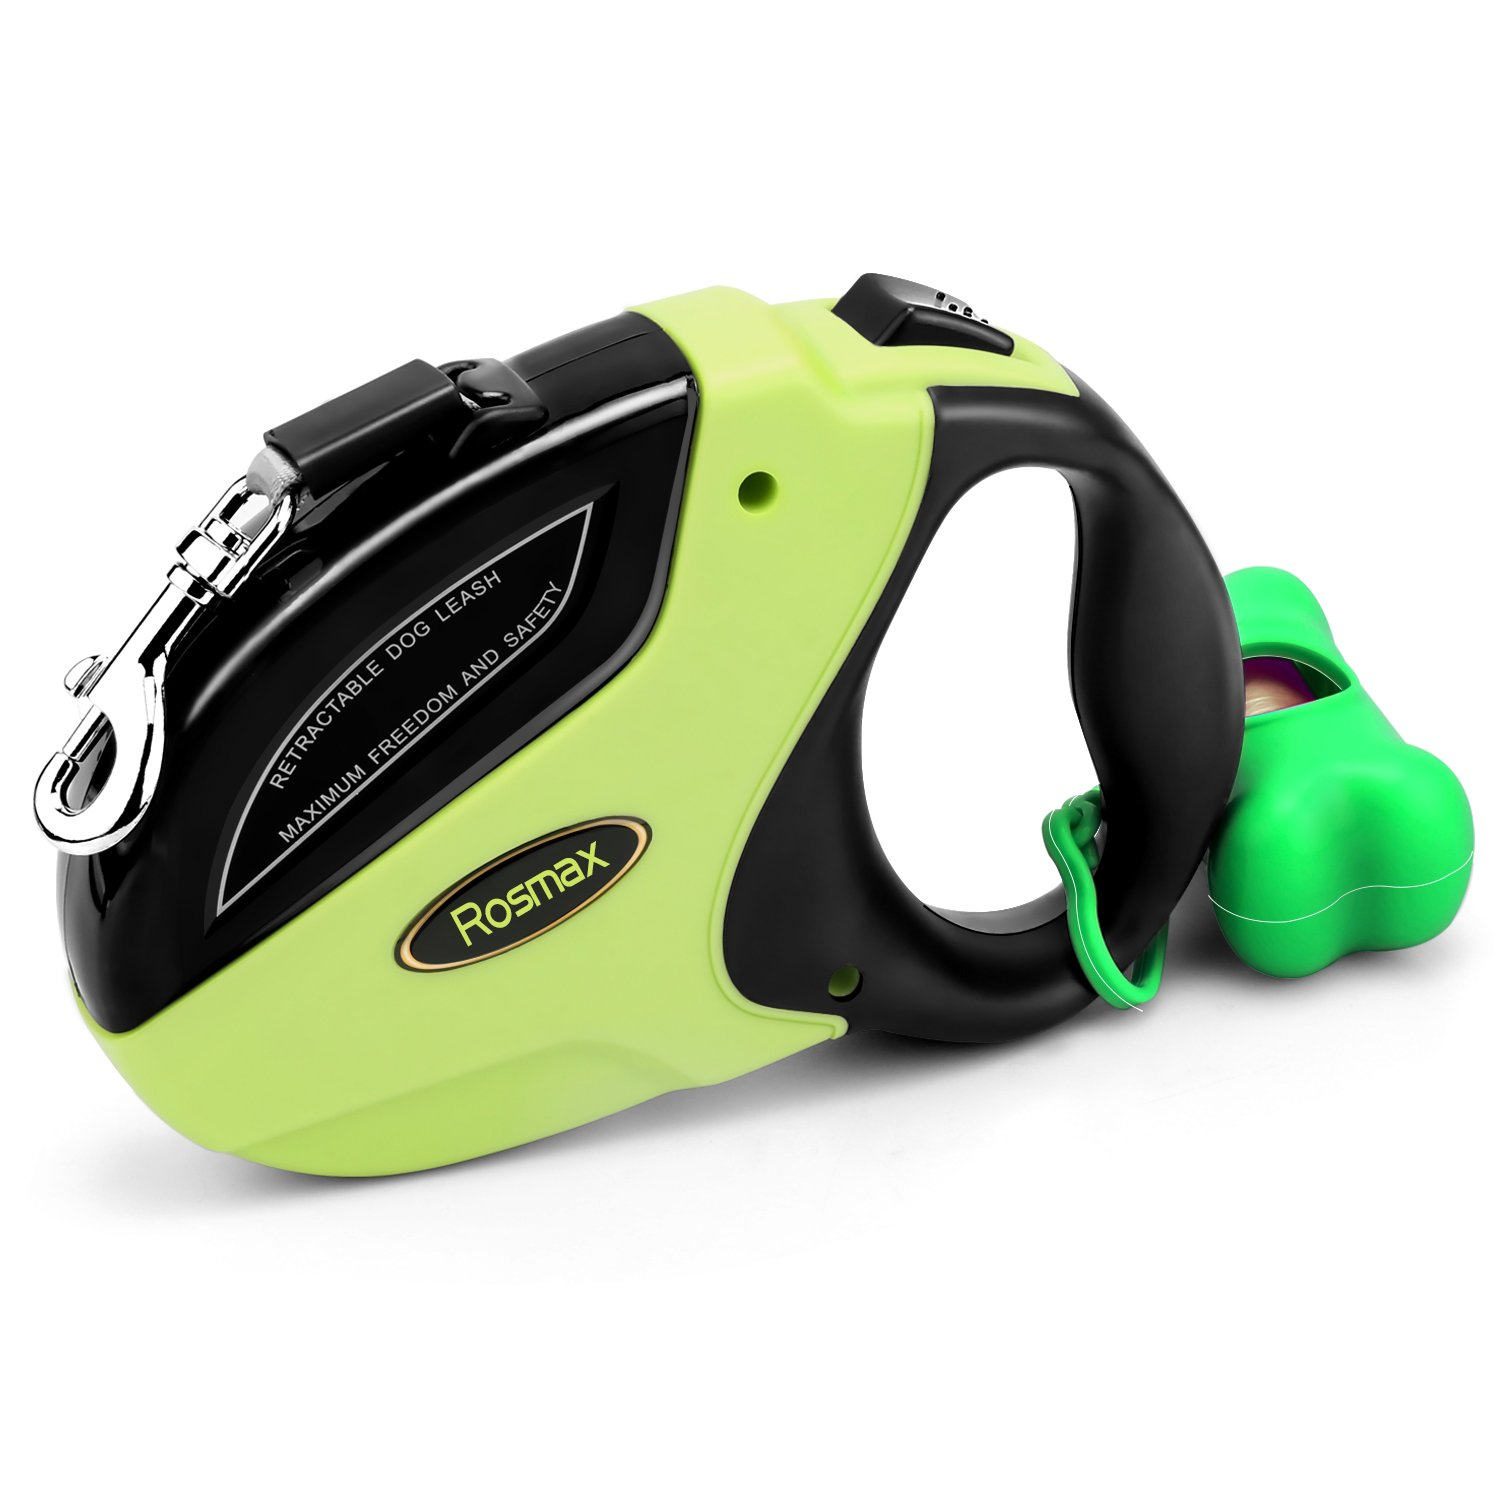 Retractable Dog Leash - Adjustable With Break And Lock Button - Great for Small, Medium & Large Dogs up to 110lbs - Strong Nylon Ribbon Extends 16ft - Dog Waste Dispenser and Bags included